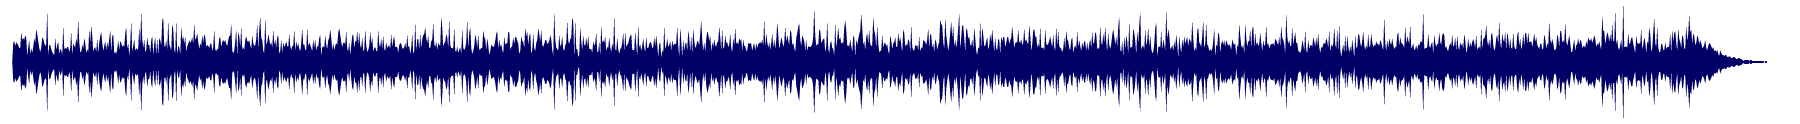 waveform of track #71211